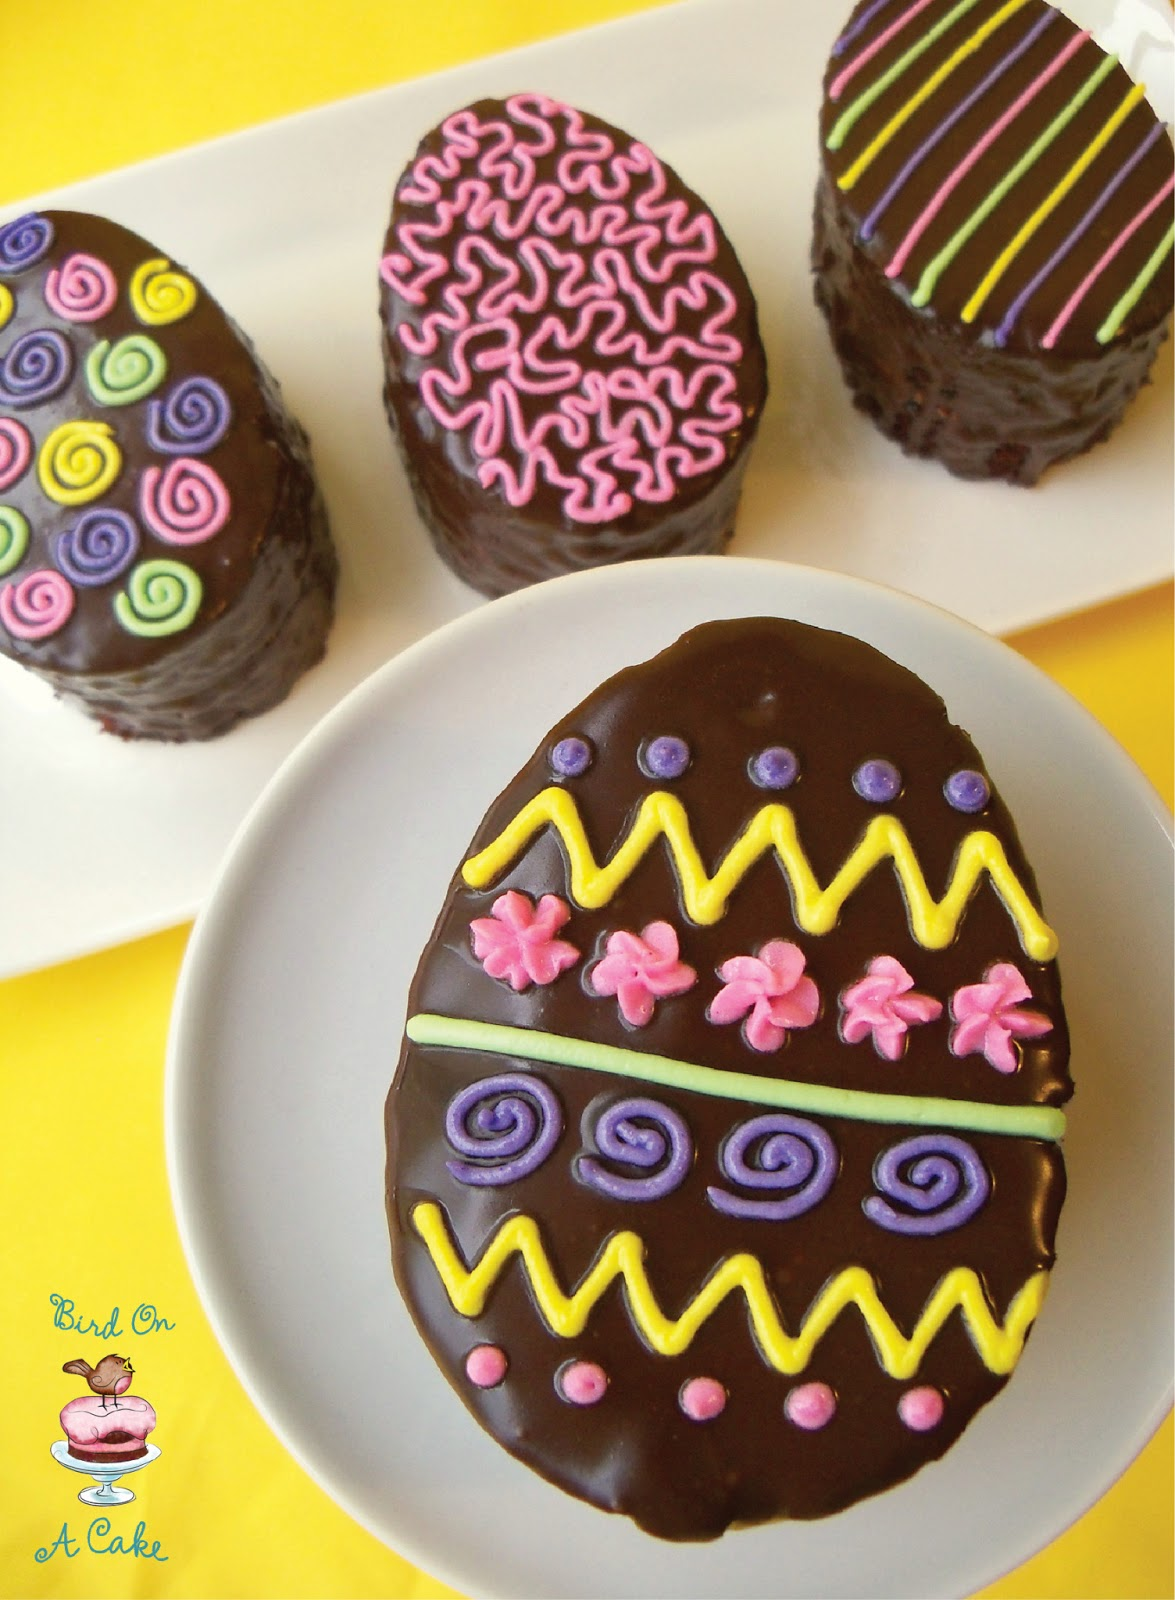 Cake Decorated With Easter Eggs : Bird On A Cake: Chocolate Easter Egg Mini Cakes